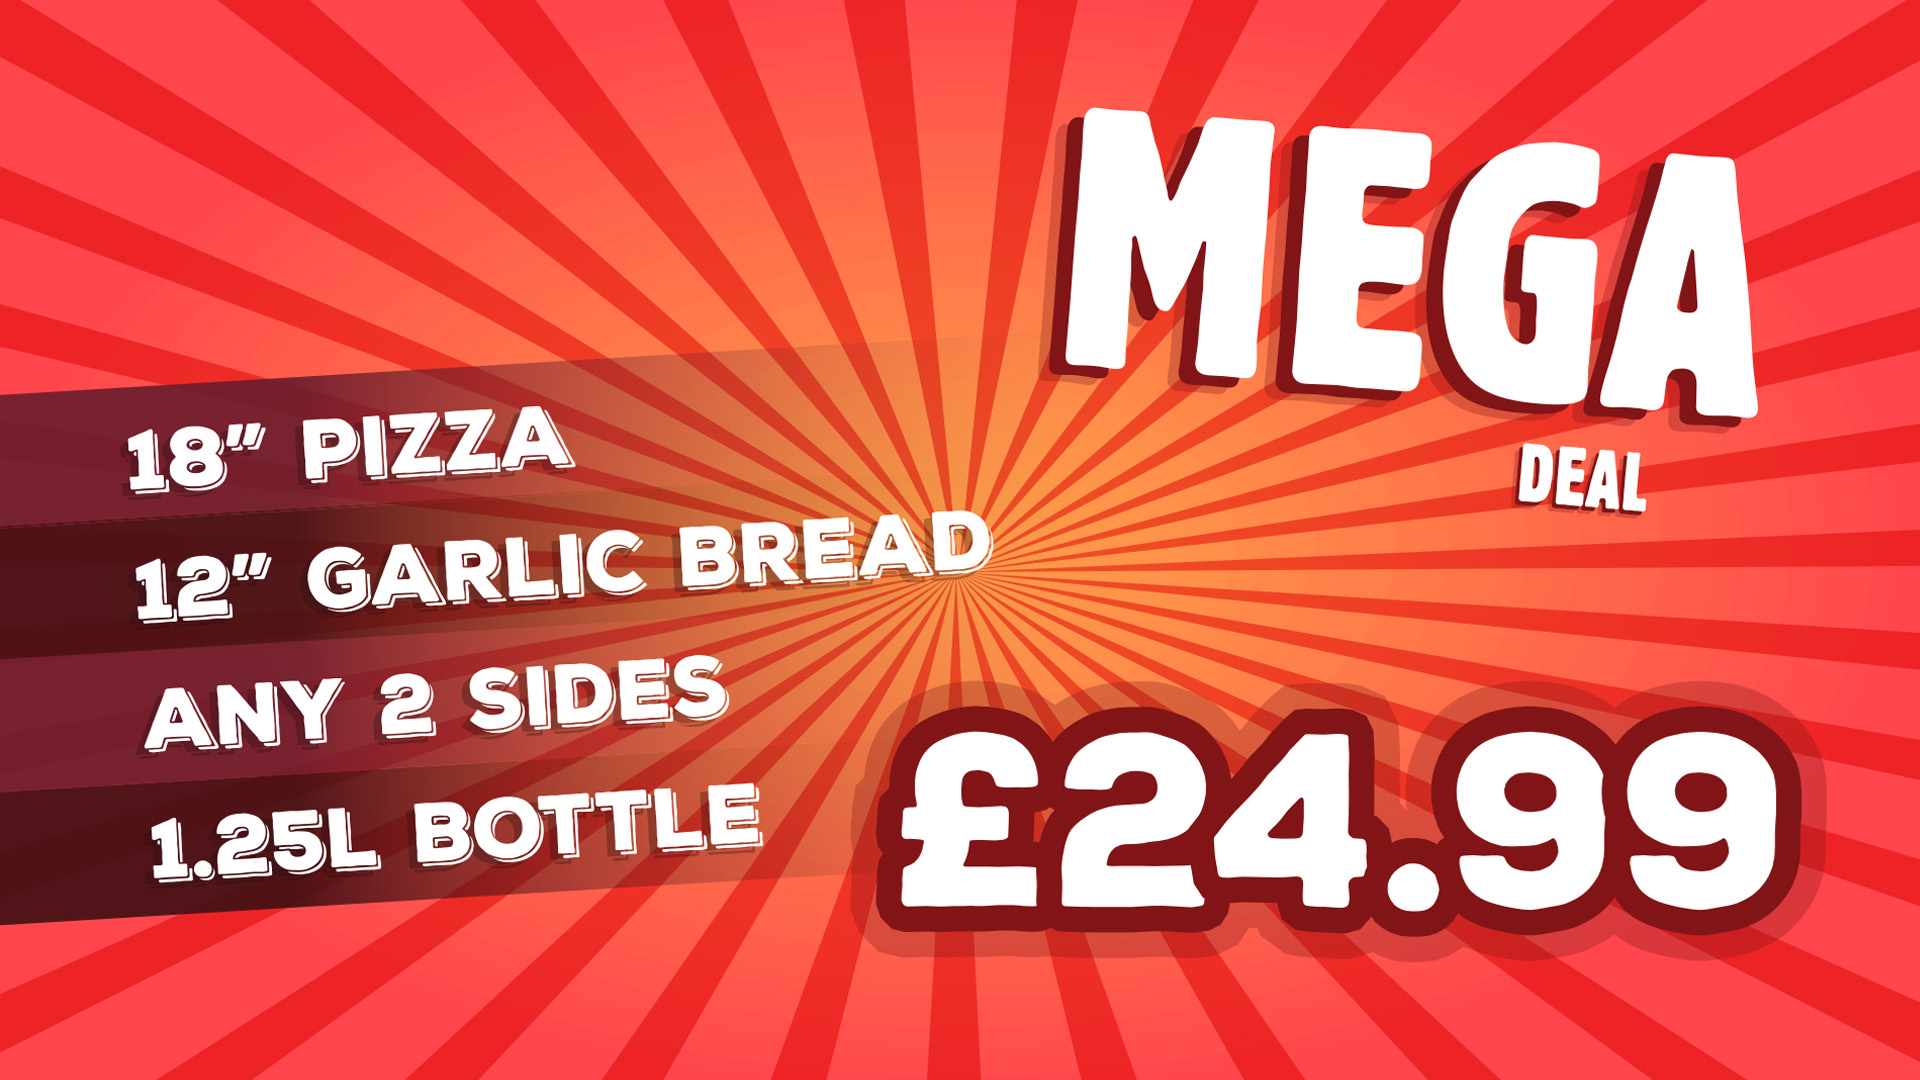 Regency Pizza Mega Deal